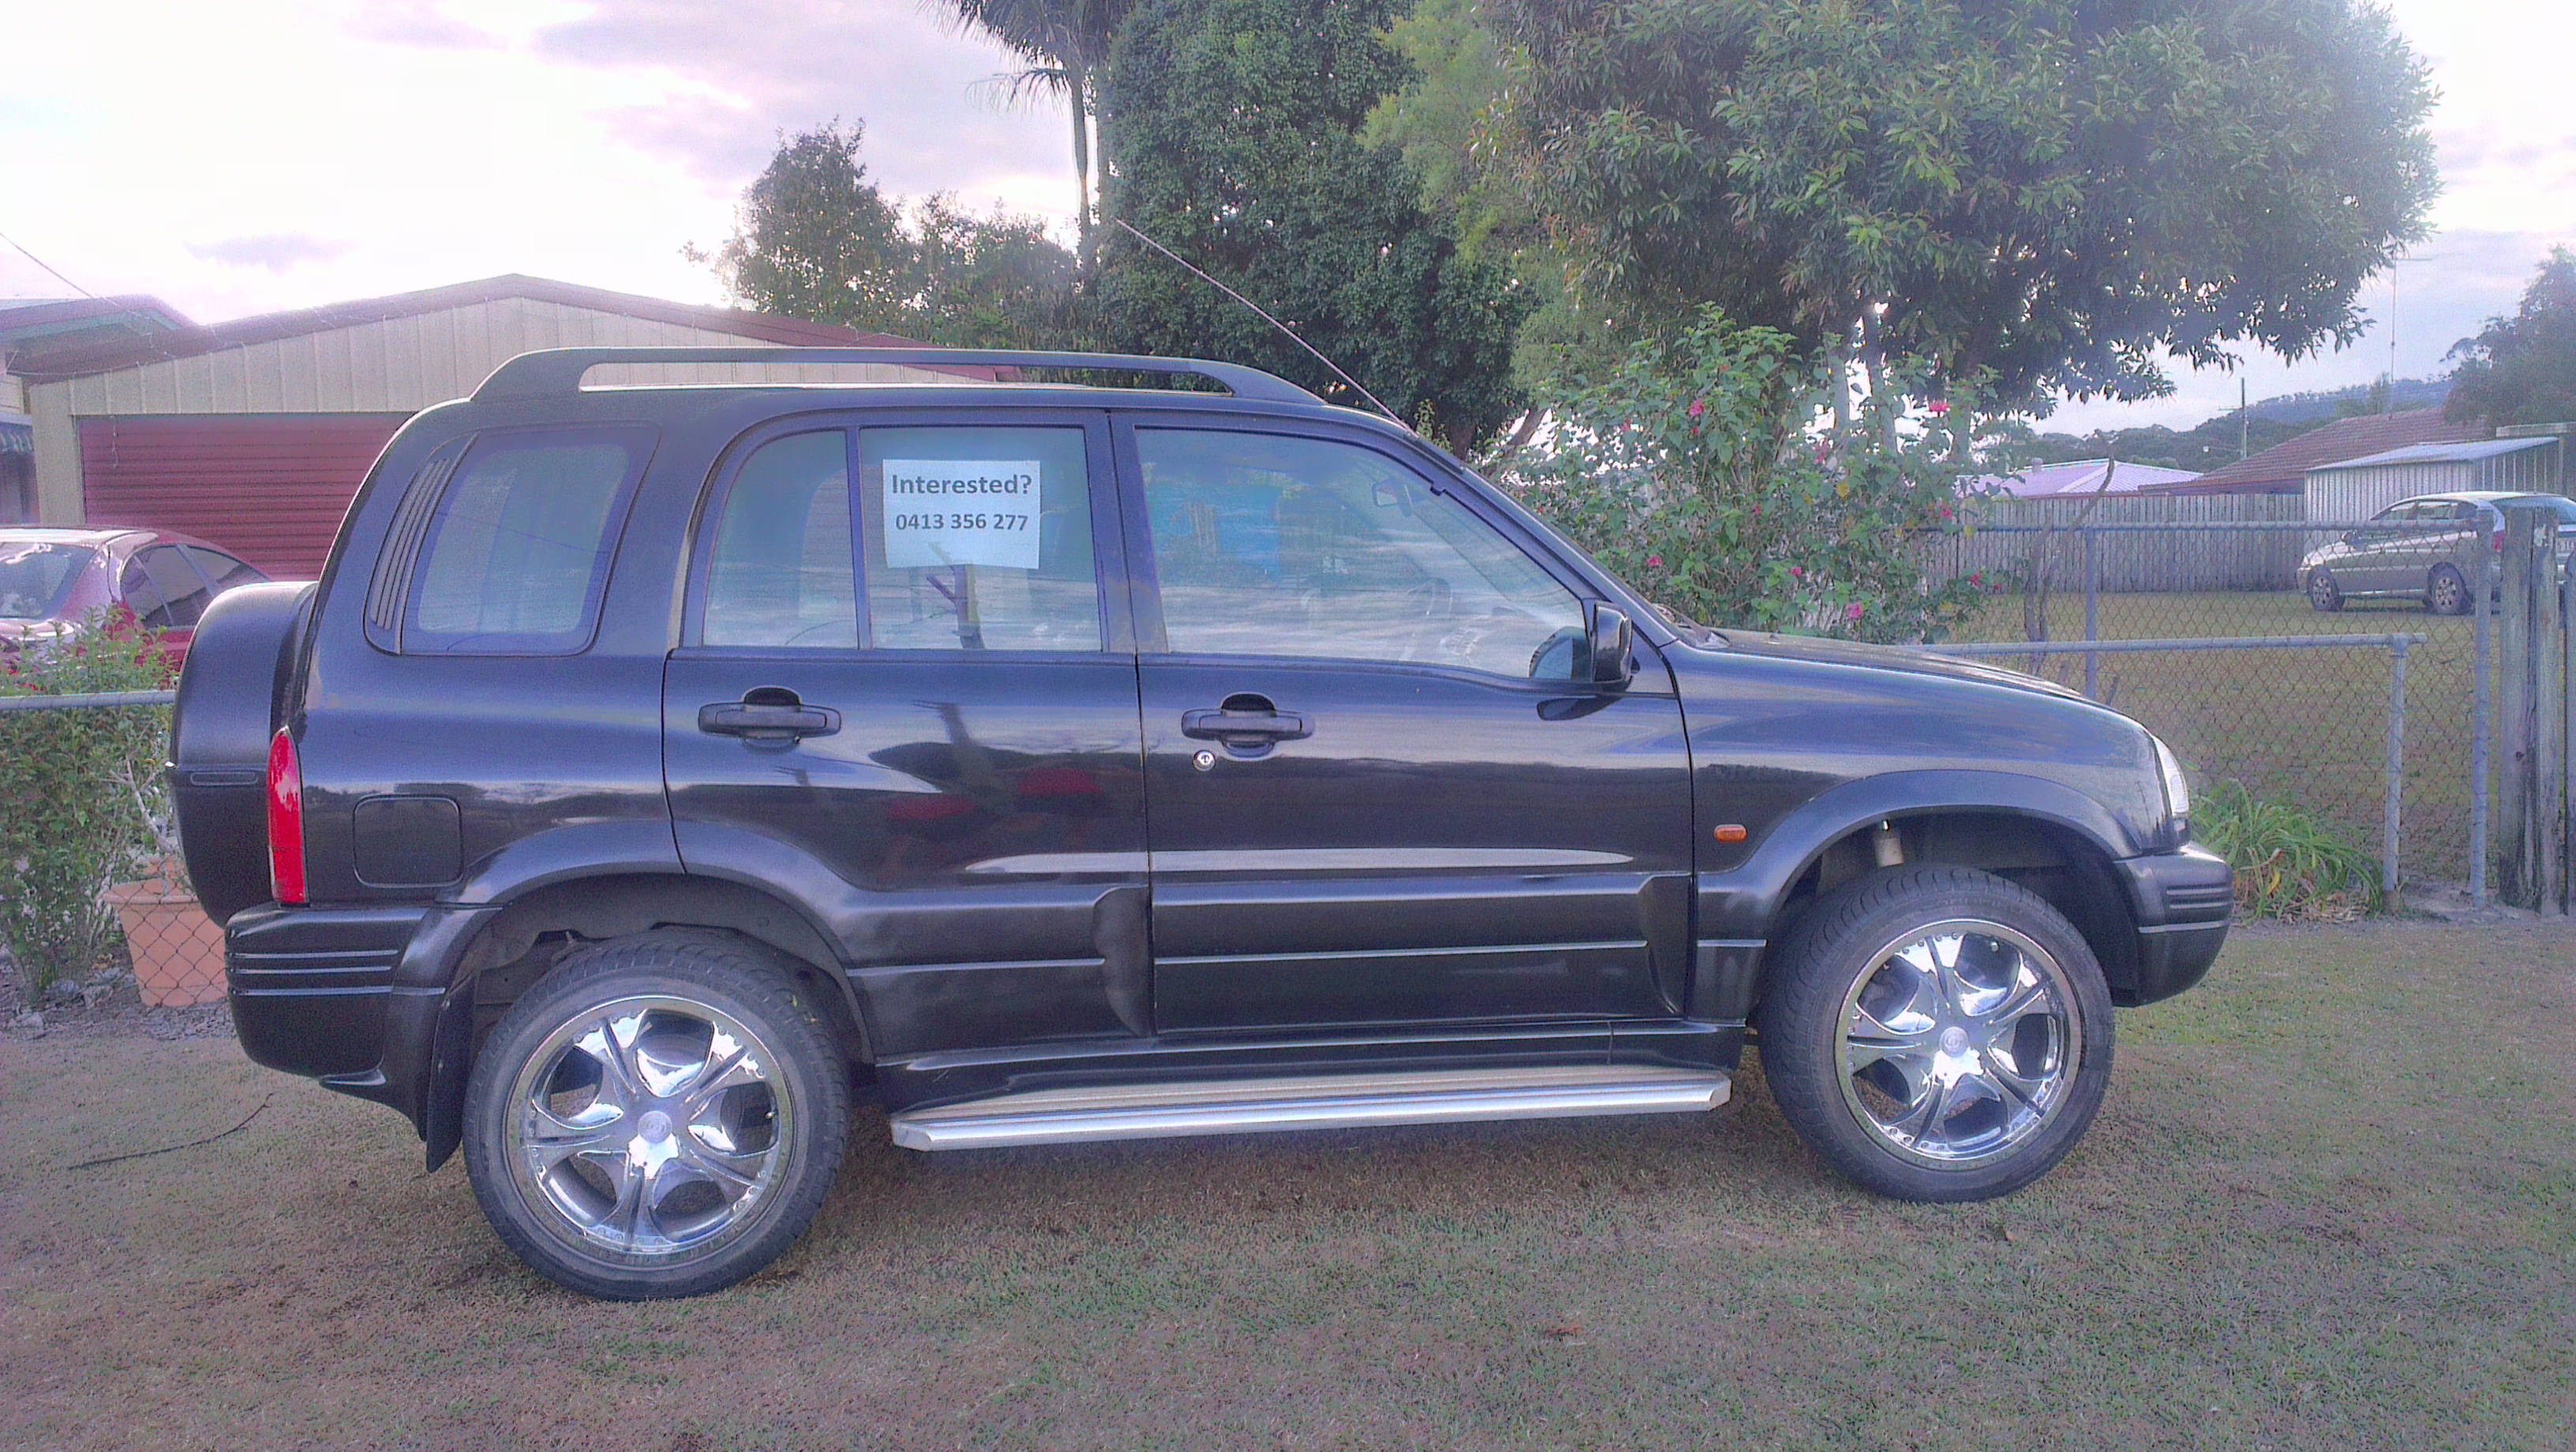 1999 suzuki grand vitara limited edition 4x4 car sales. Black Bedroom Furniture Sets. Home Design Ideas